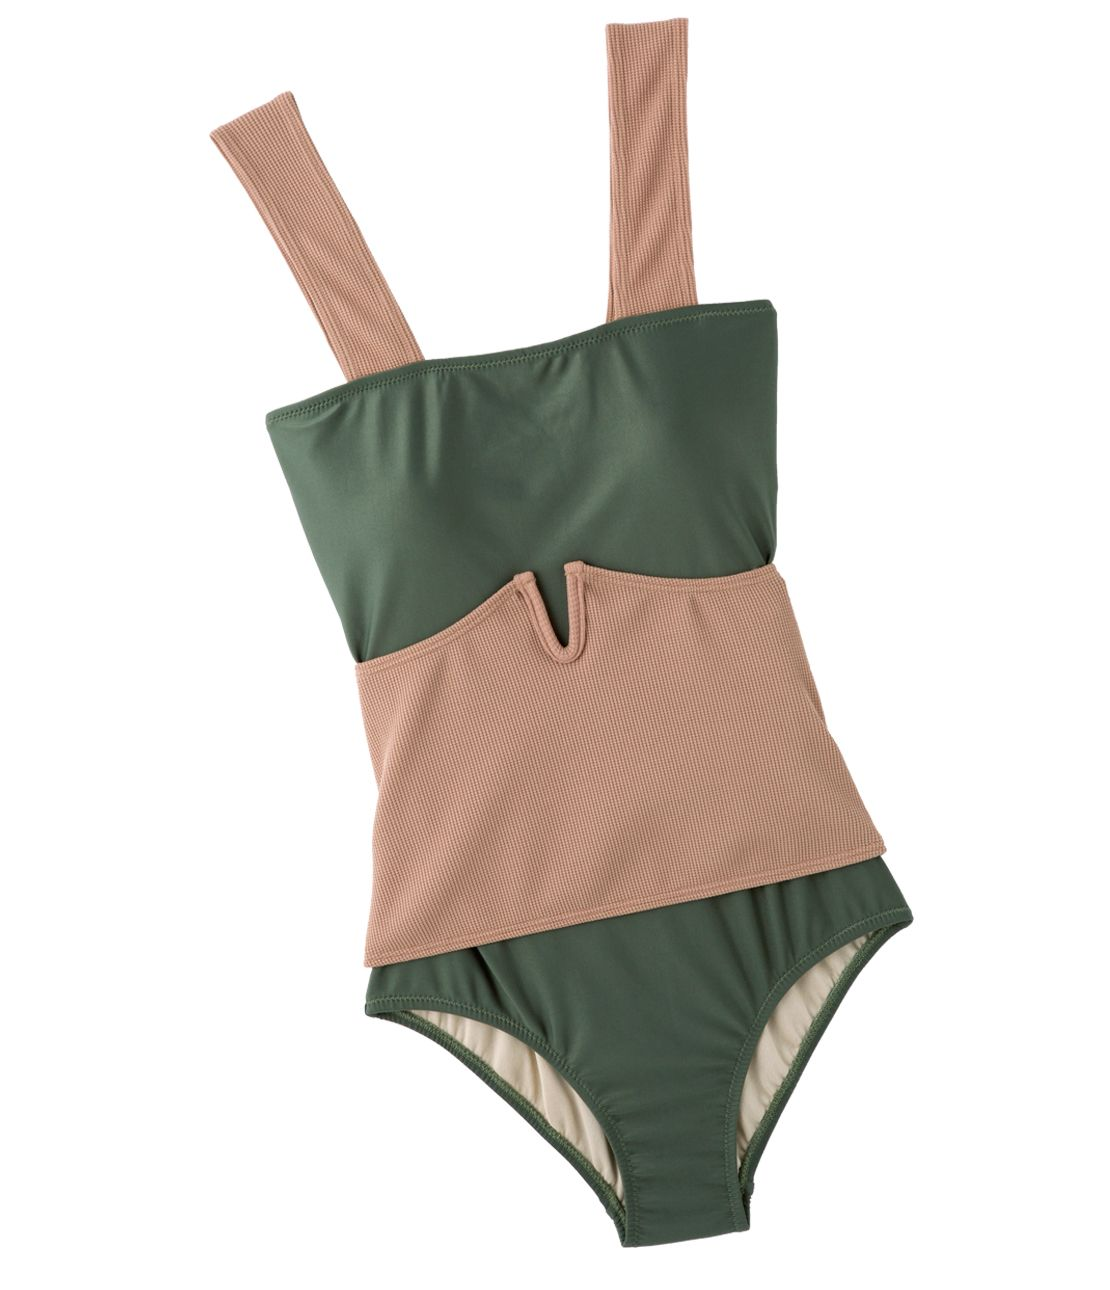 YM mode corset Swimwear Set